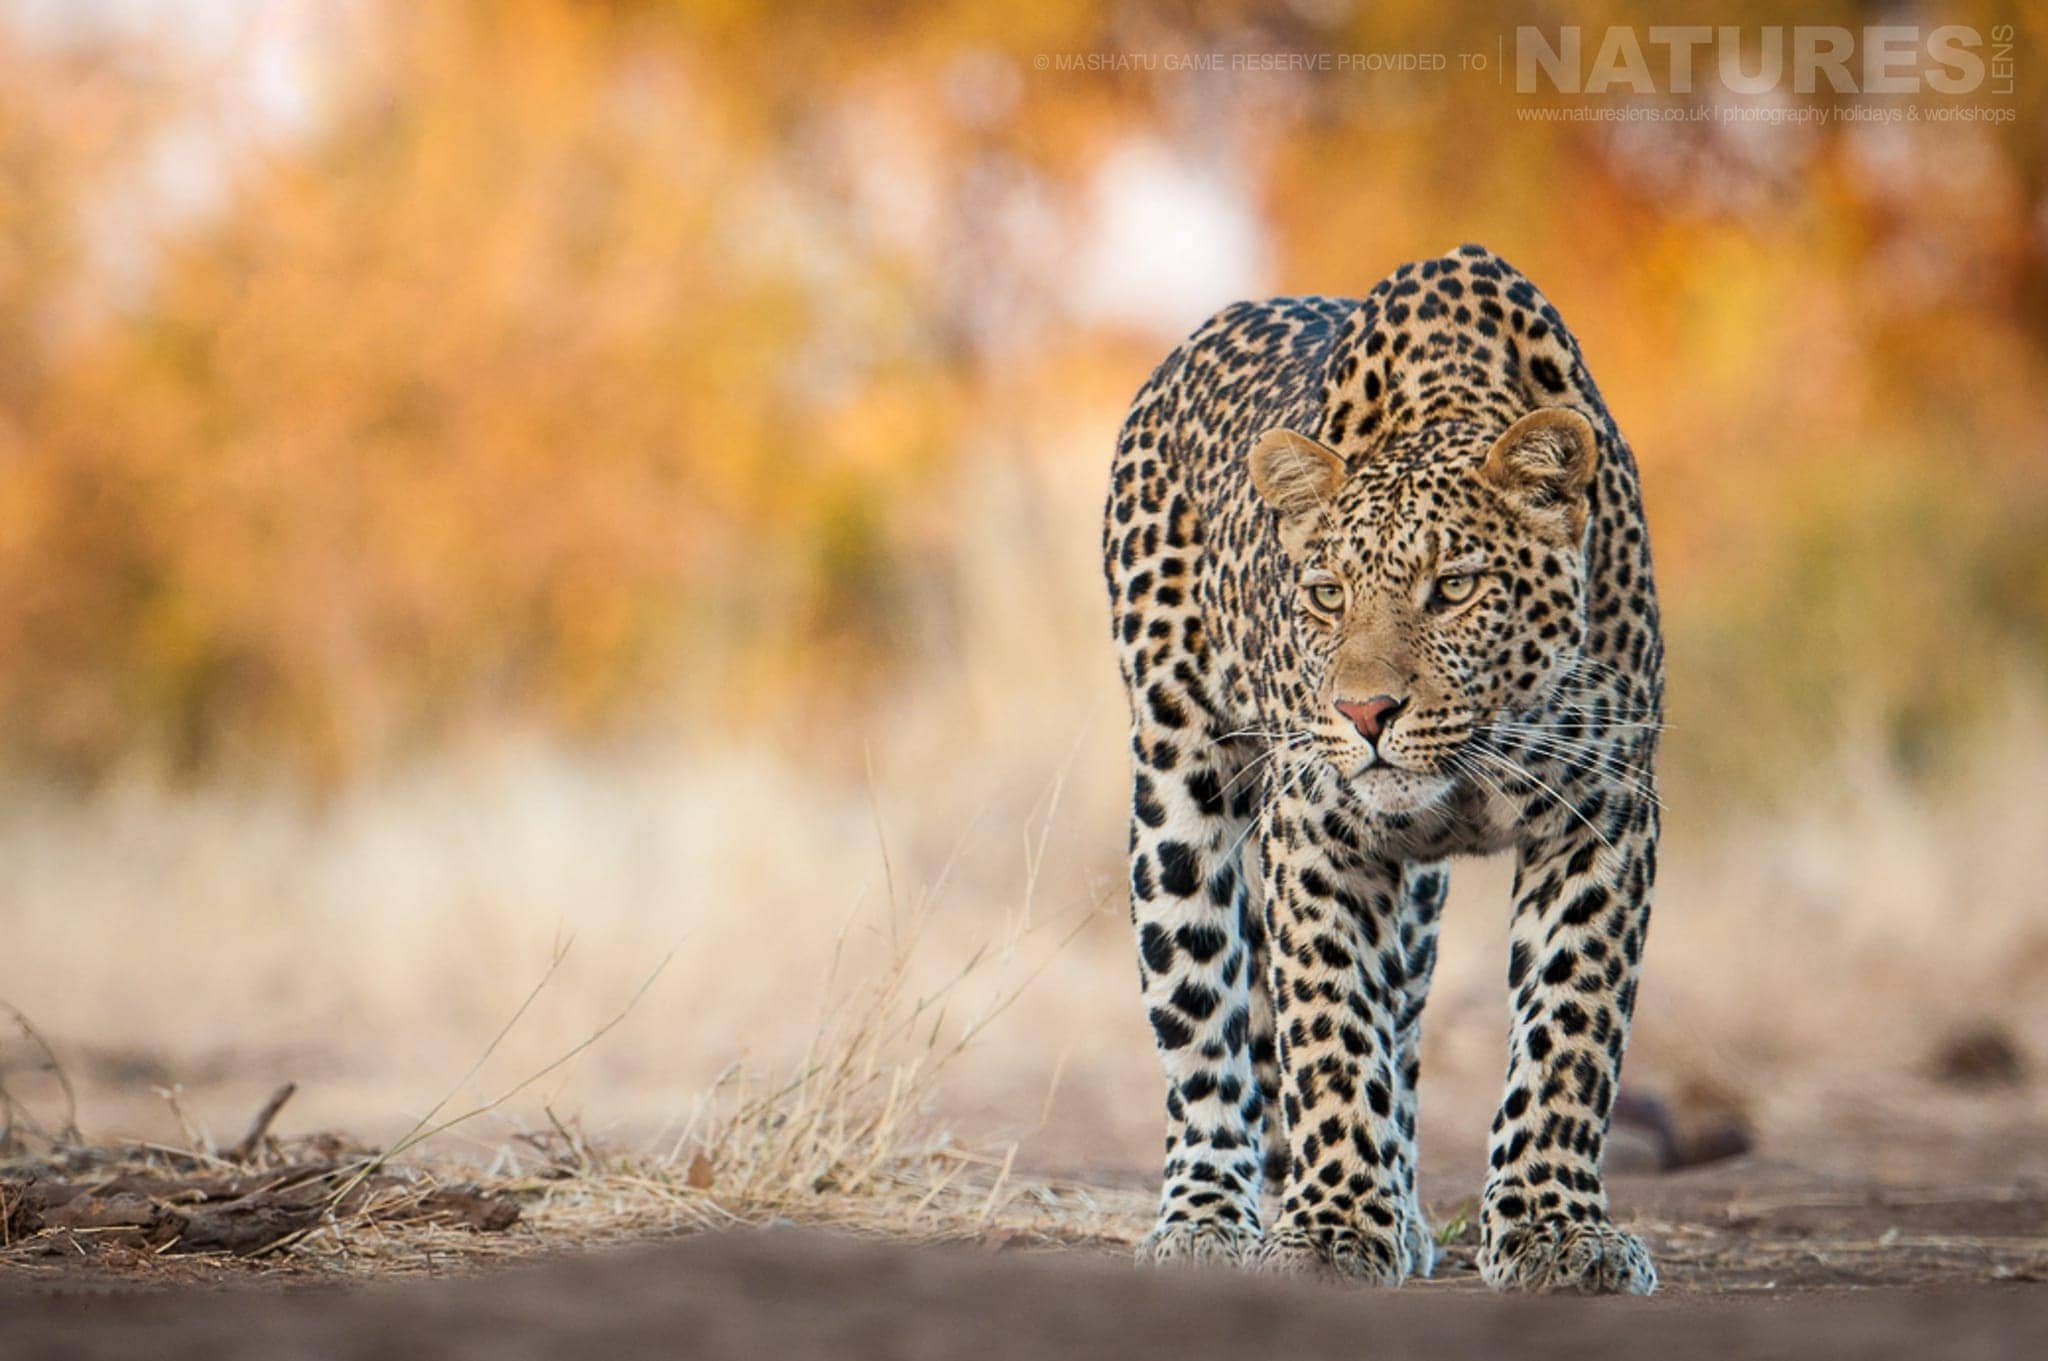 One of the leopards stalks within the reserve – photographed at the locations used for the NaturesLens Mashatu, Land of the Giants Photography Holiday